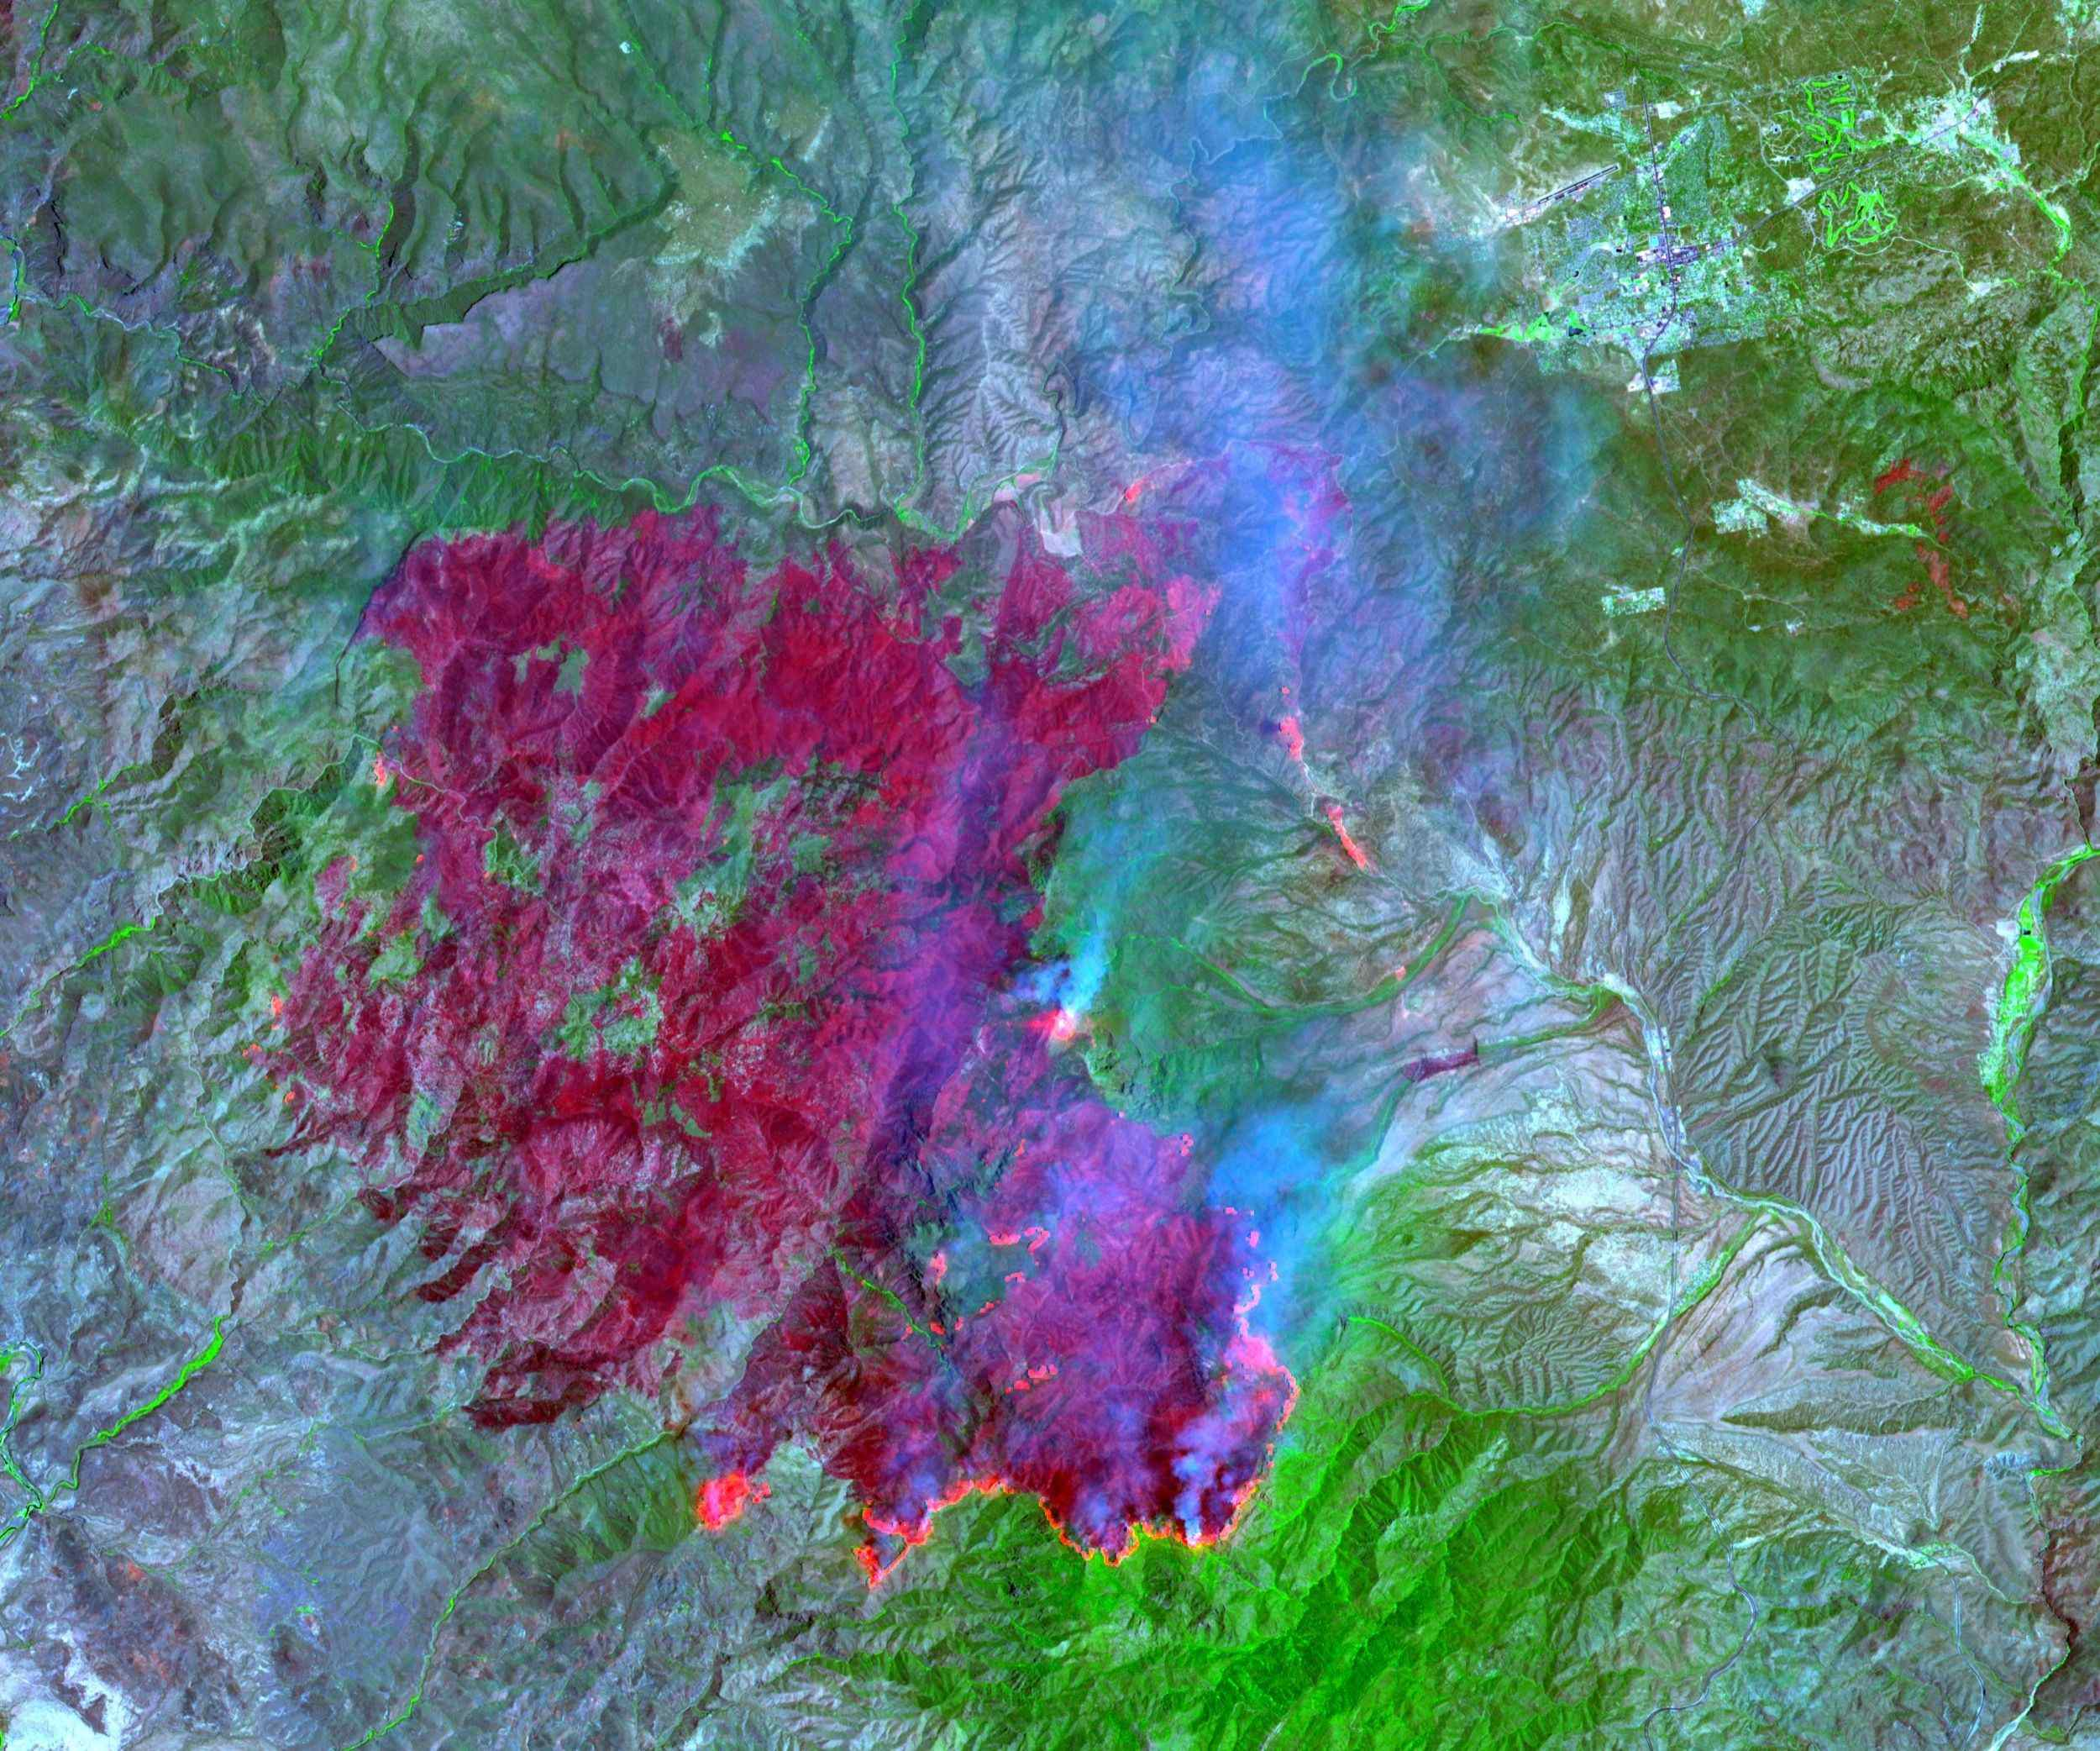 On July 3, 2004, the Advanced Spaceborne Thermal Emission and Reflection Radiometer (ASTER) on NASA's Terra satellite acquired this image of the Willow fire near Payson, Arizona.